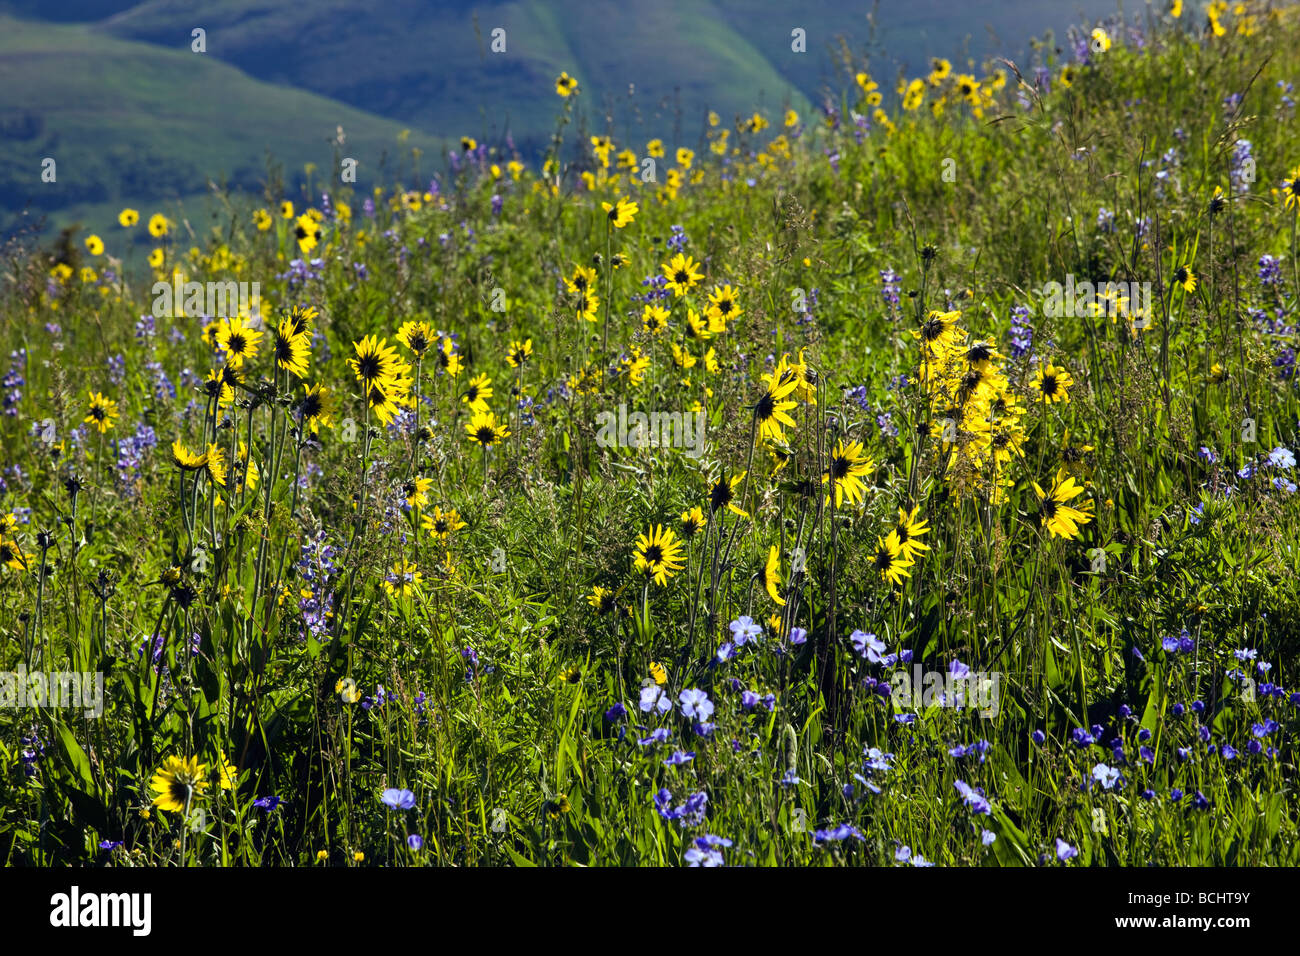 A pasture full of wildflowers including Blue Flax, Lupine and Aspen Sunflowers near Mount Crested Butte Colorado - Stock Image